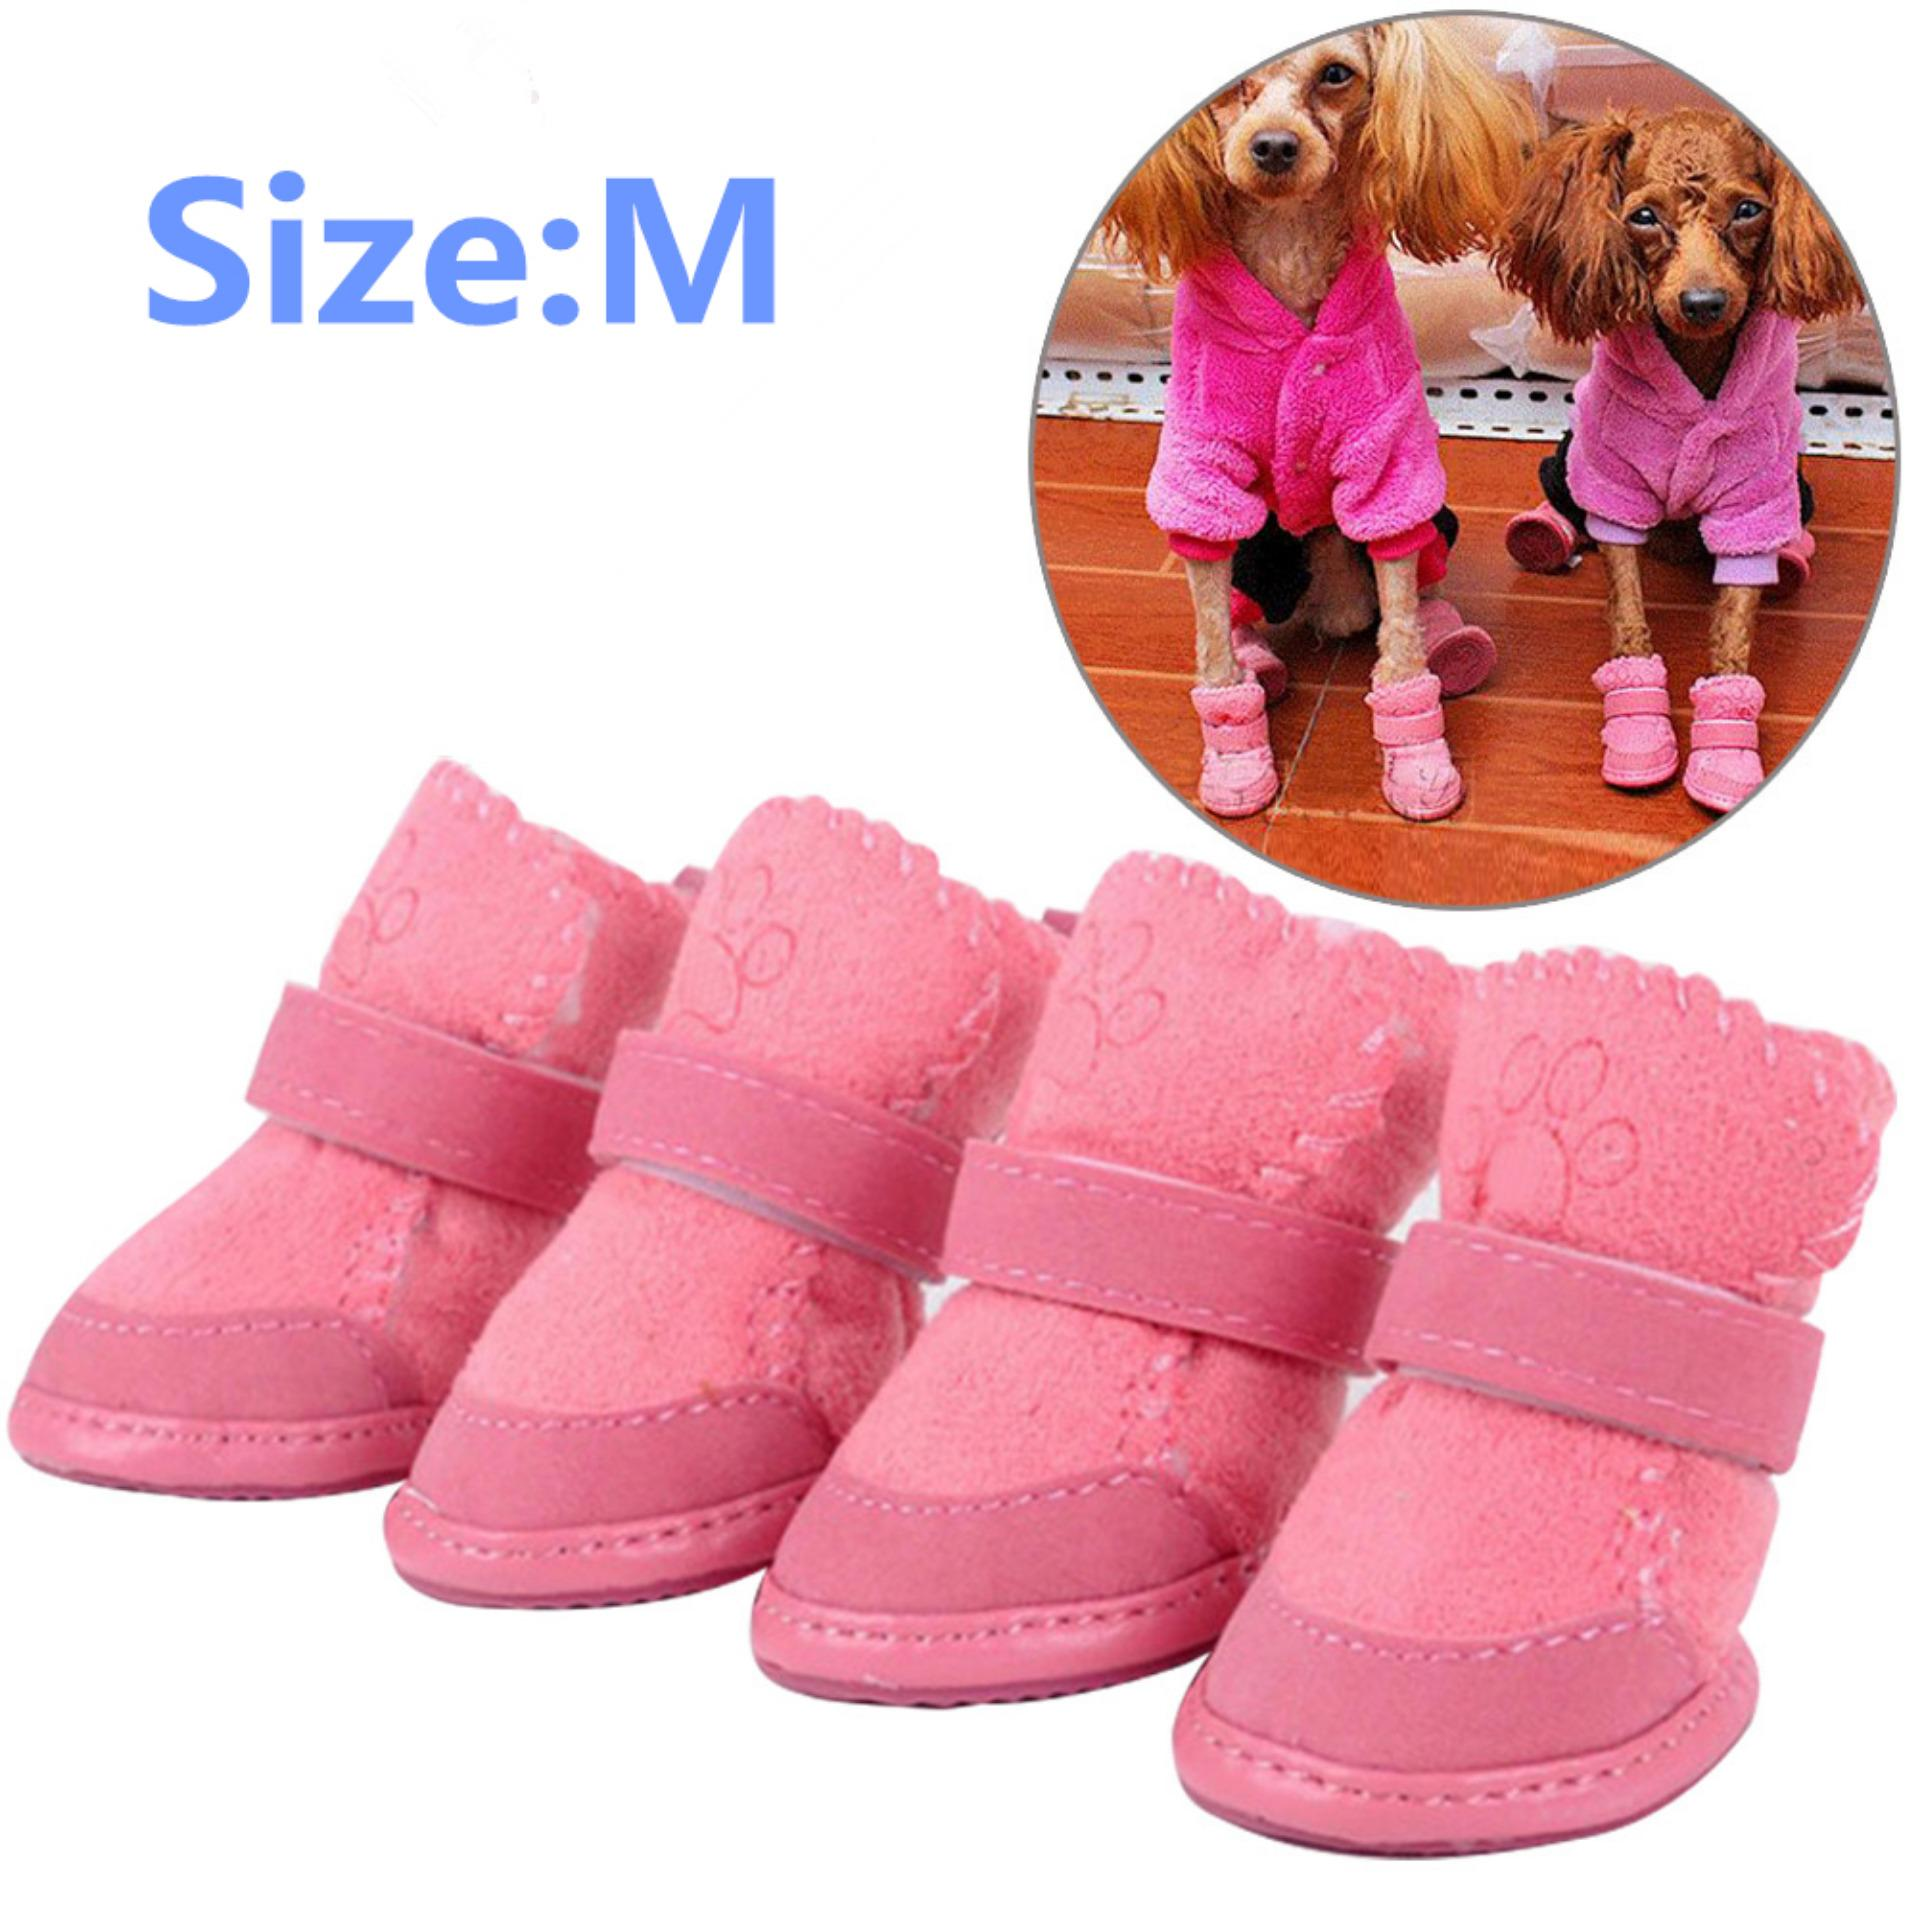 YBC Cute Chihuahua Dog Shoes Small Dogs Pet Shoes Puppy Warm Boots - intl